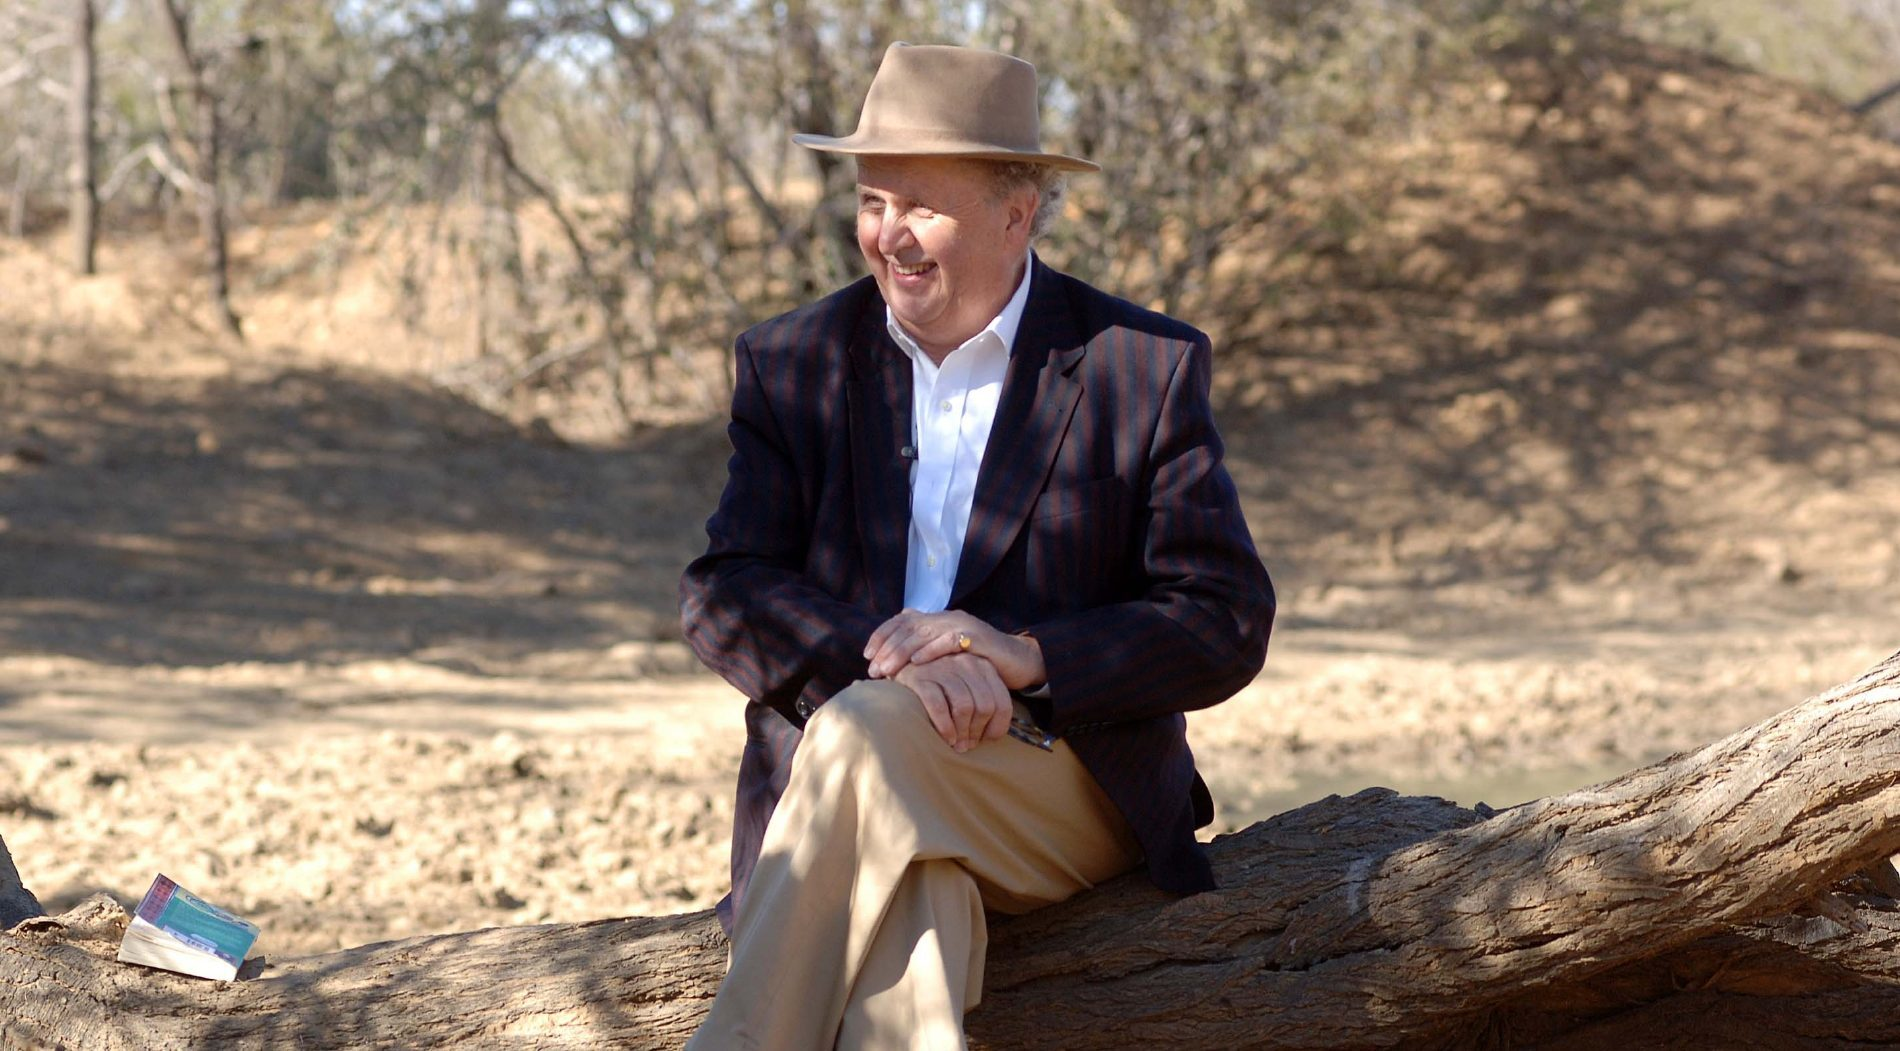 Alexander McCall Smith in Botswana.